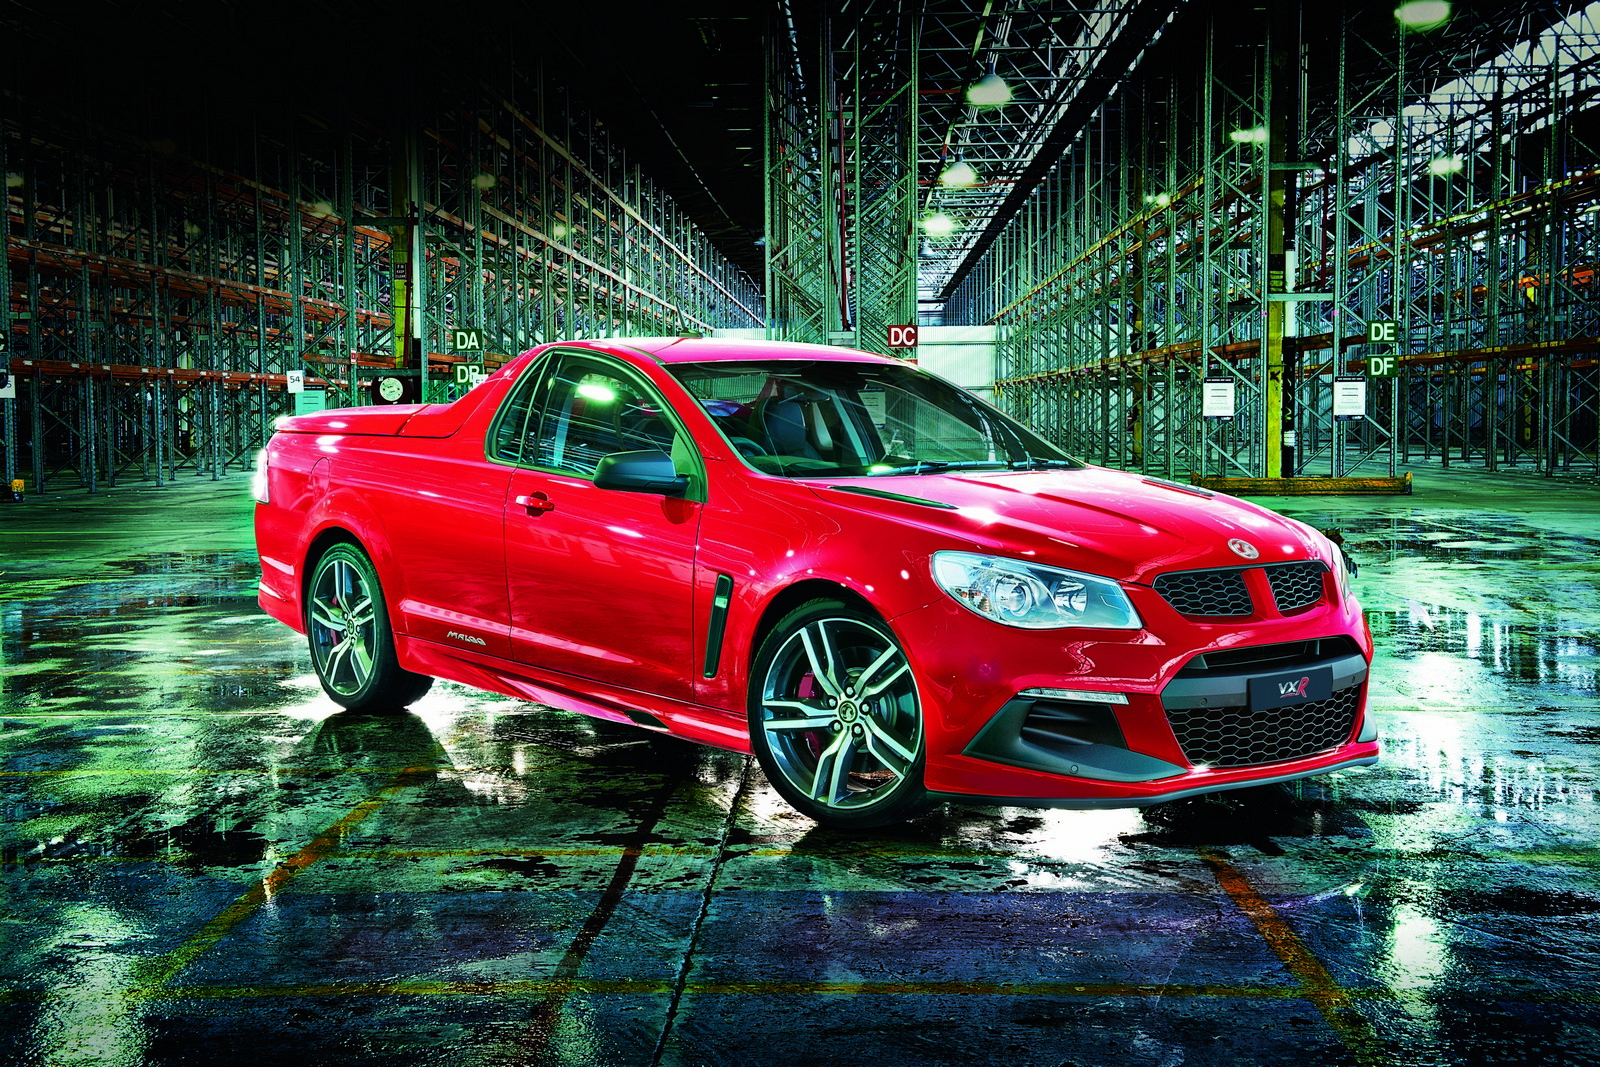 An LSA V8 Motor with 528 hp for 2016 Vauxhall Maloo